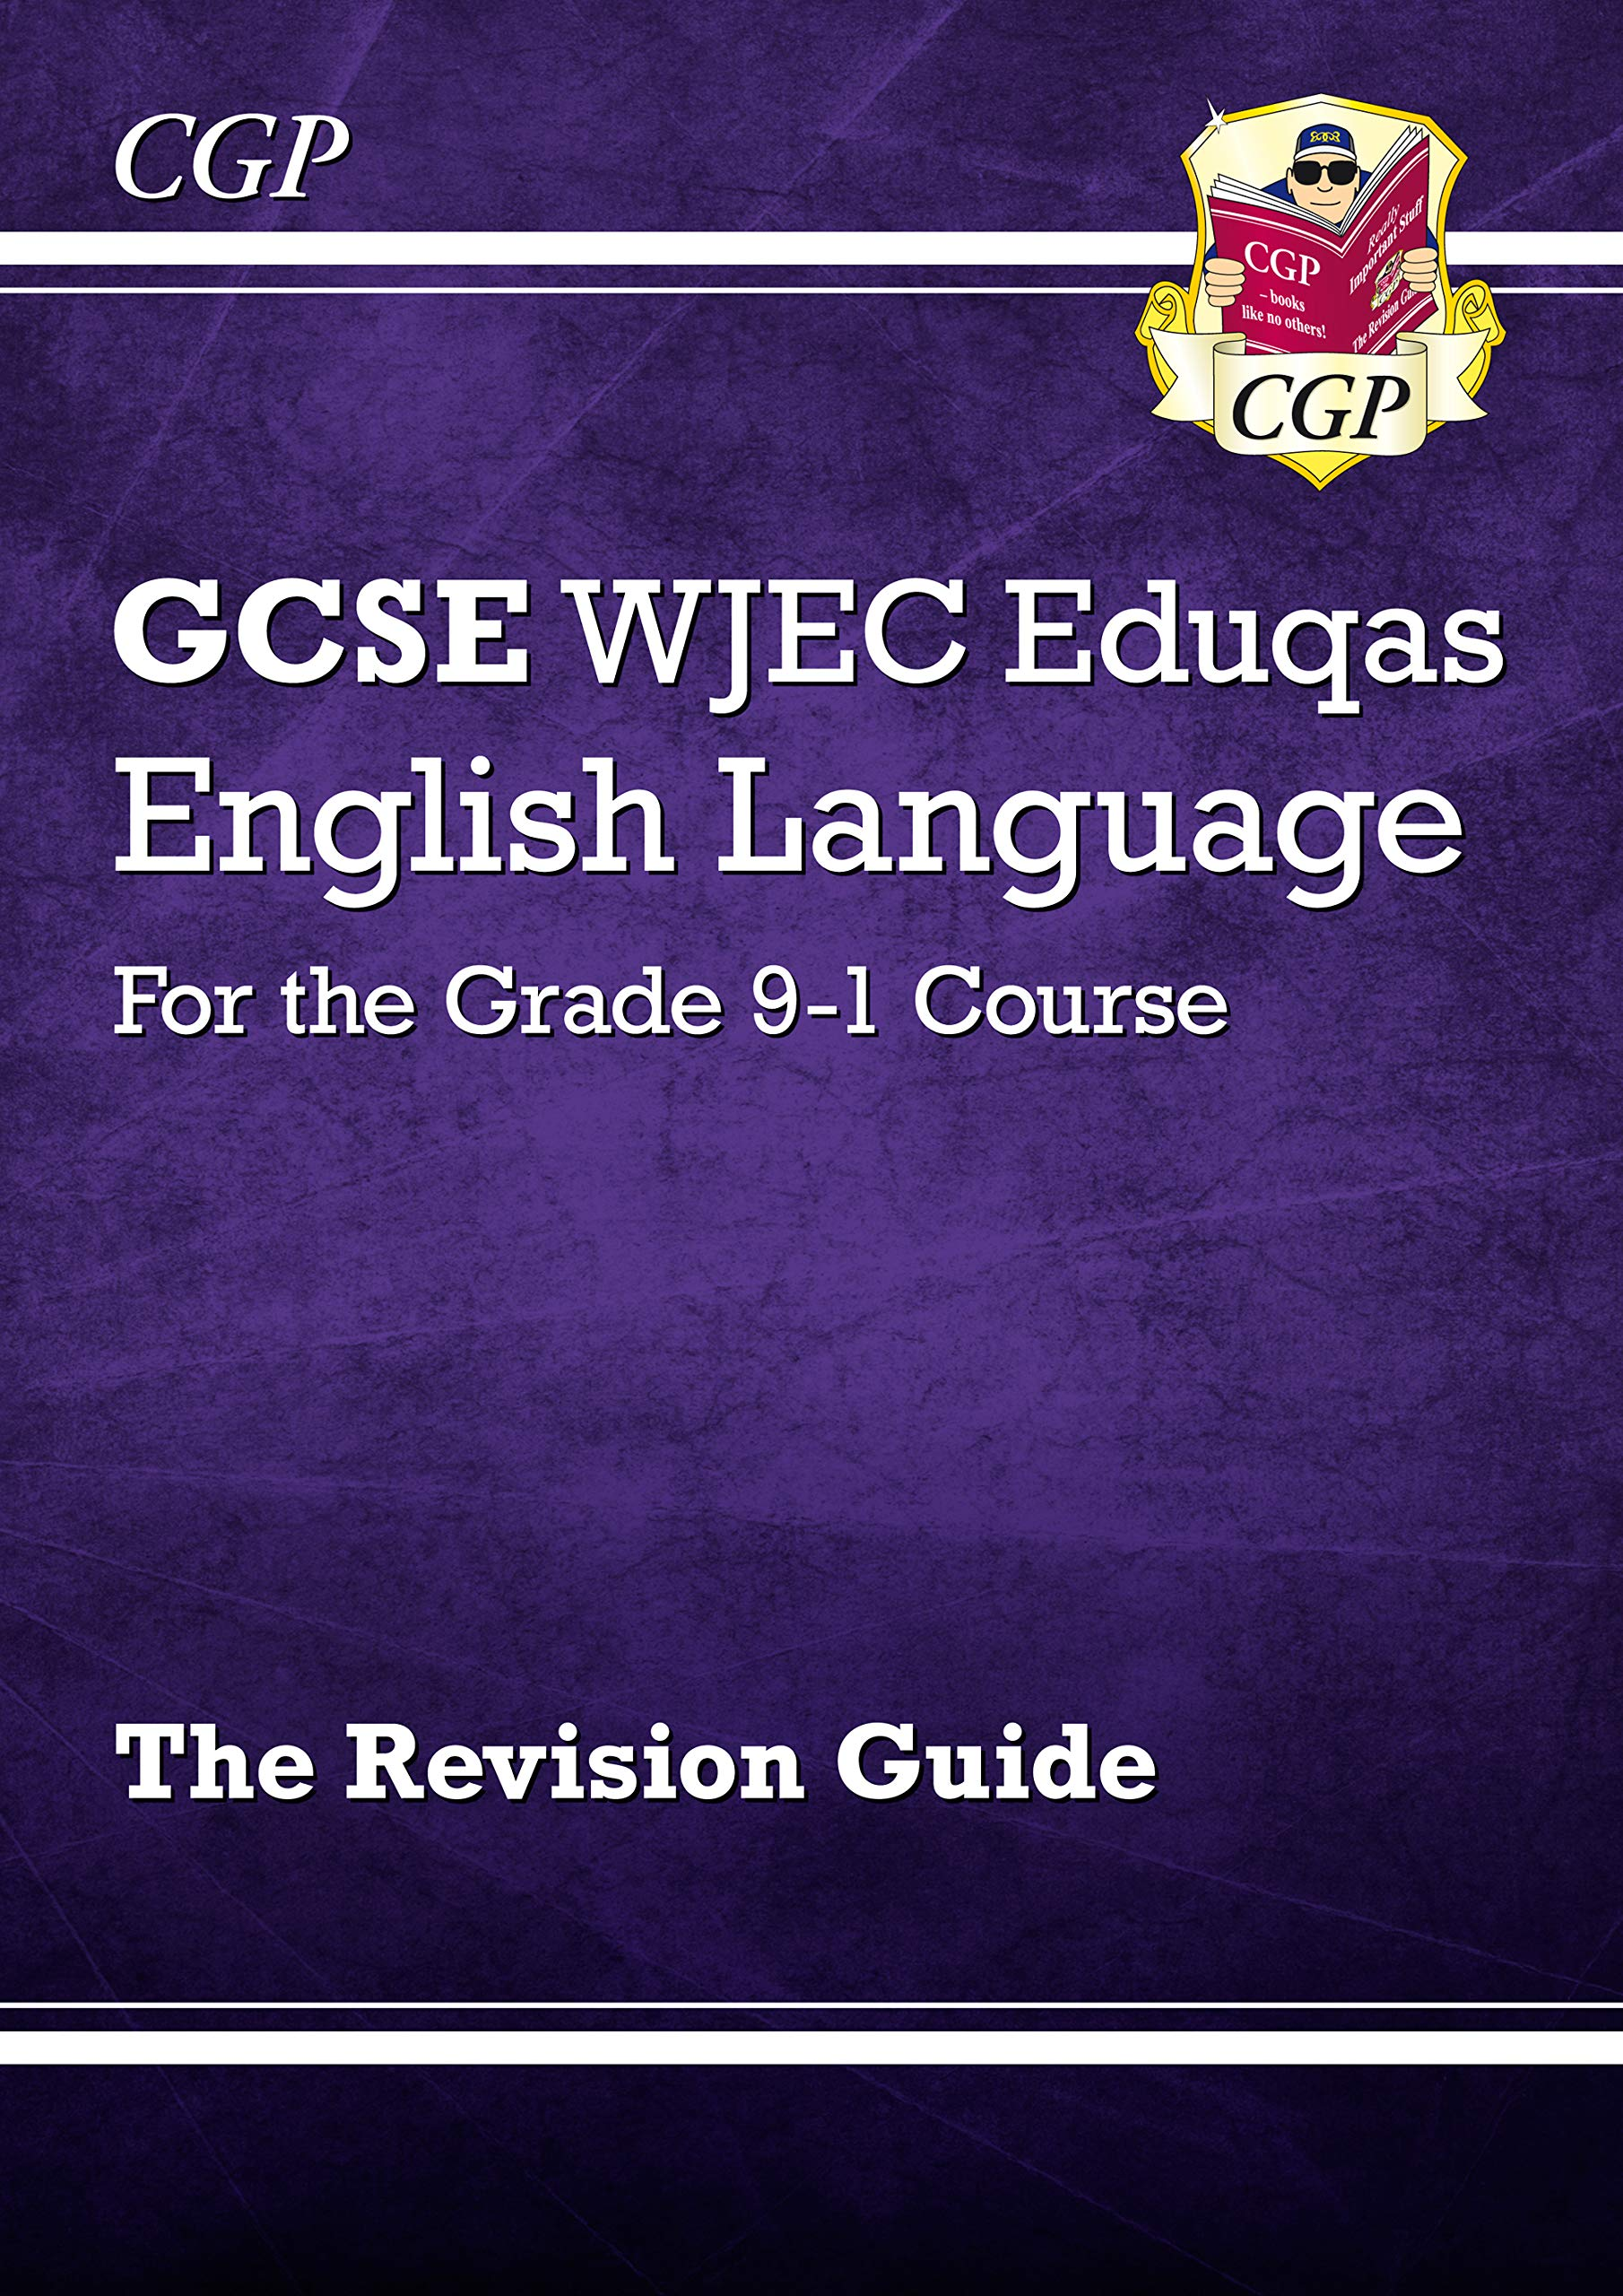 GCSE English Language WJEC Eduqas Revision Guide - for the